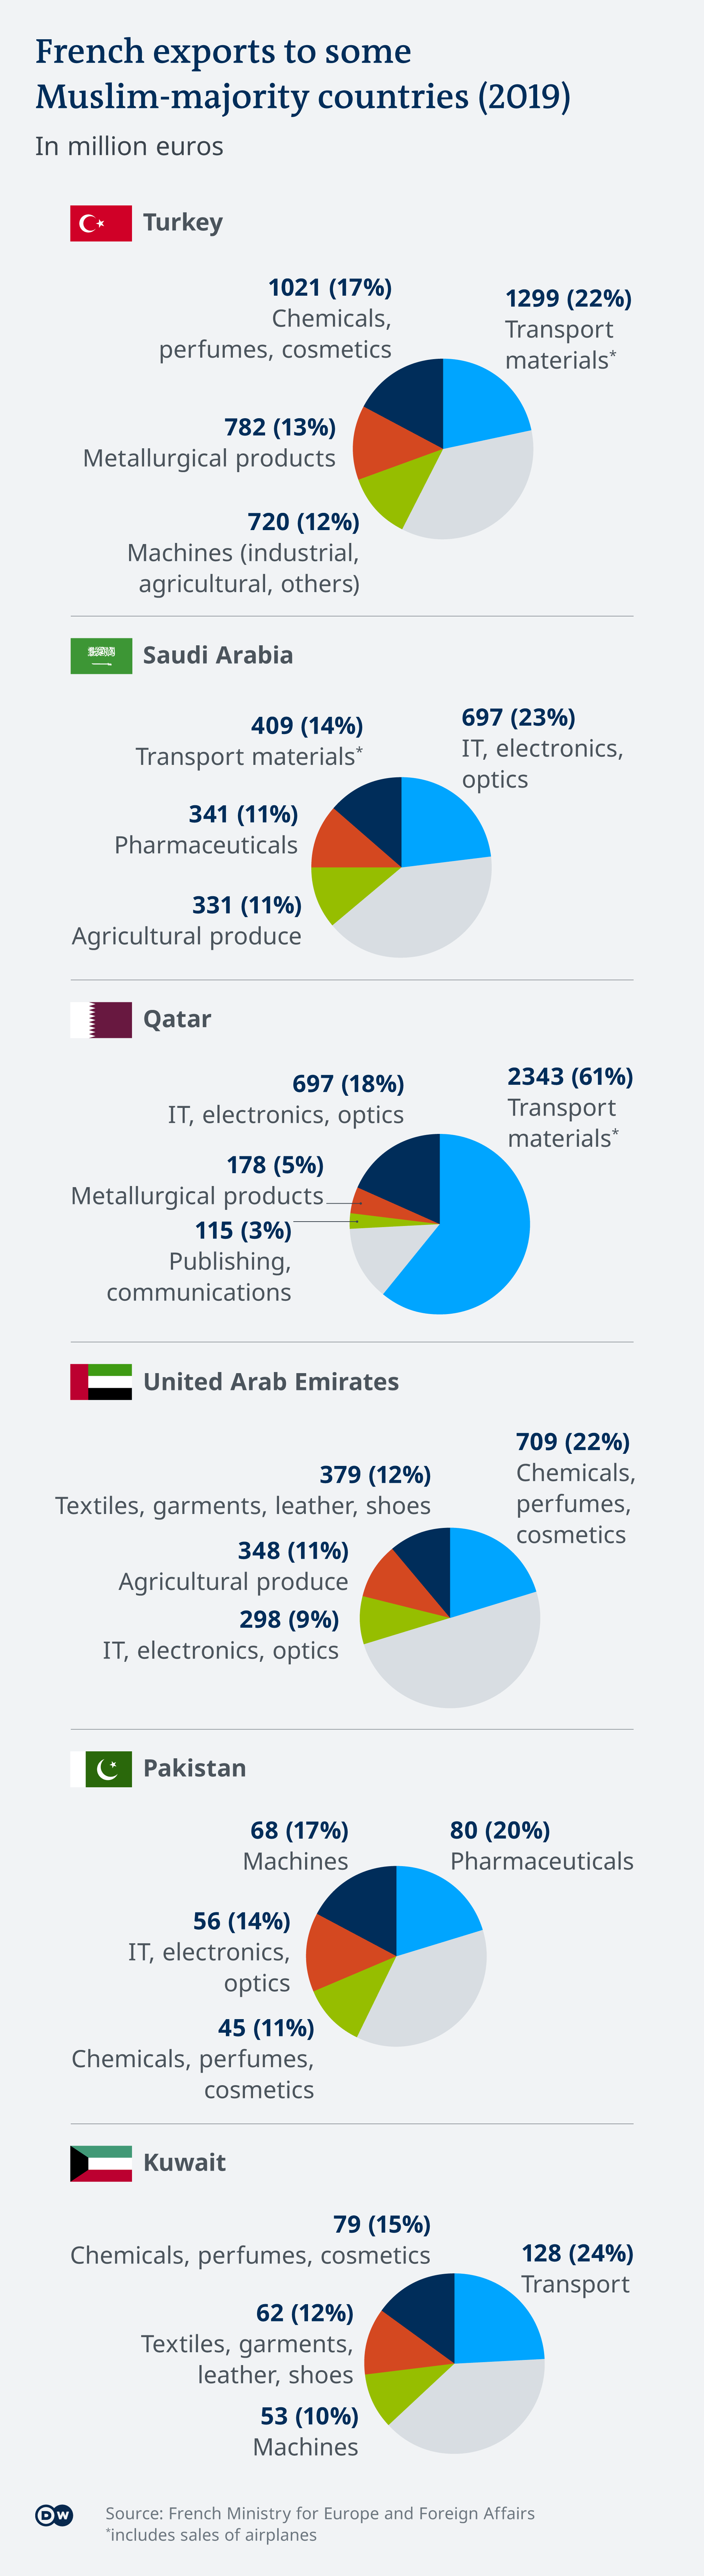 An infographic showing France's main exports to the Muslim world